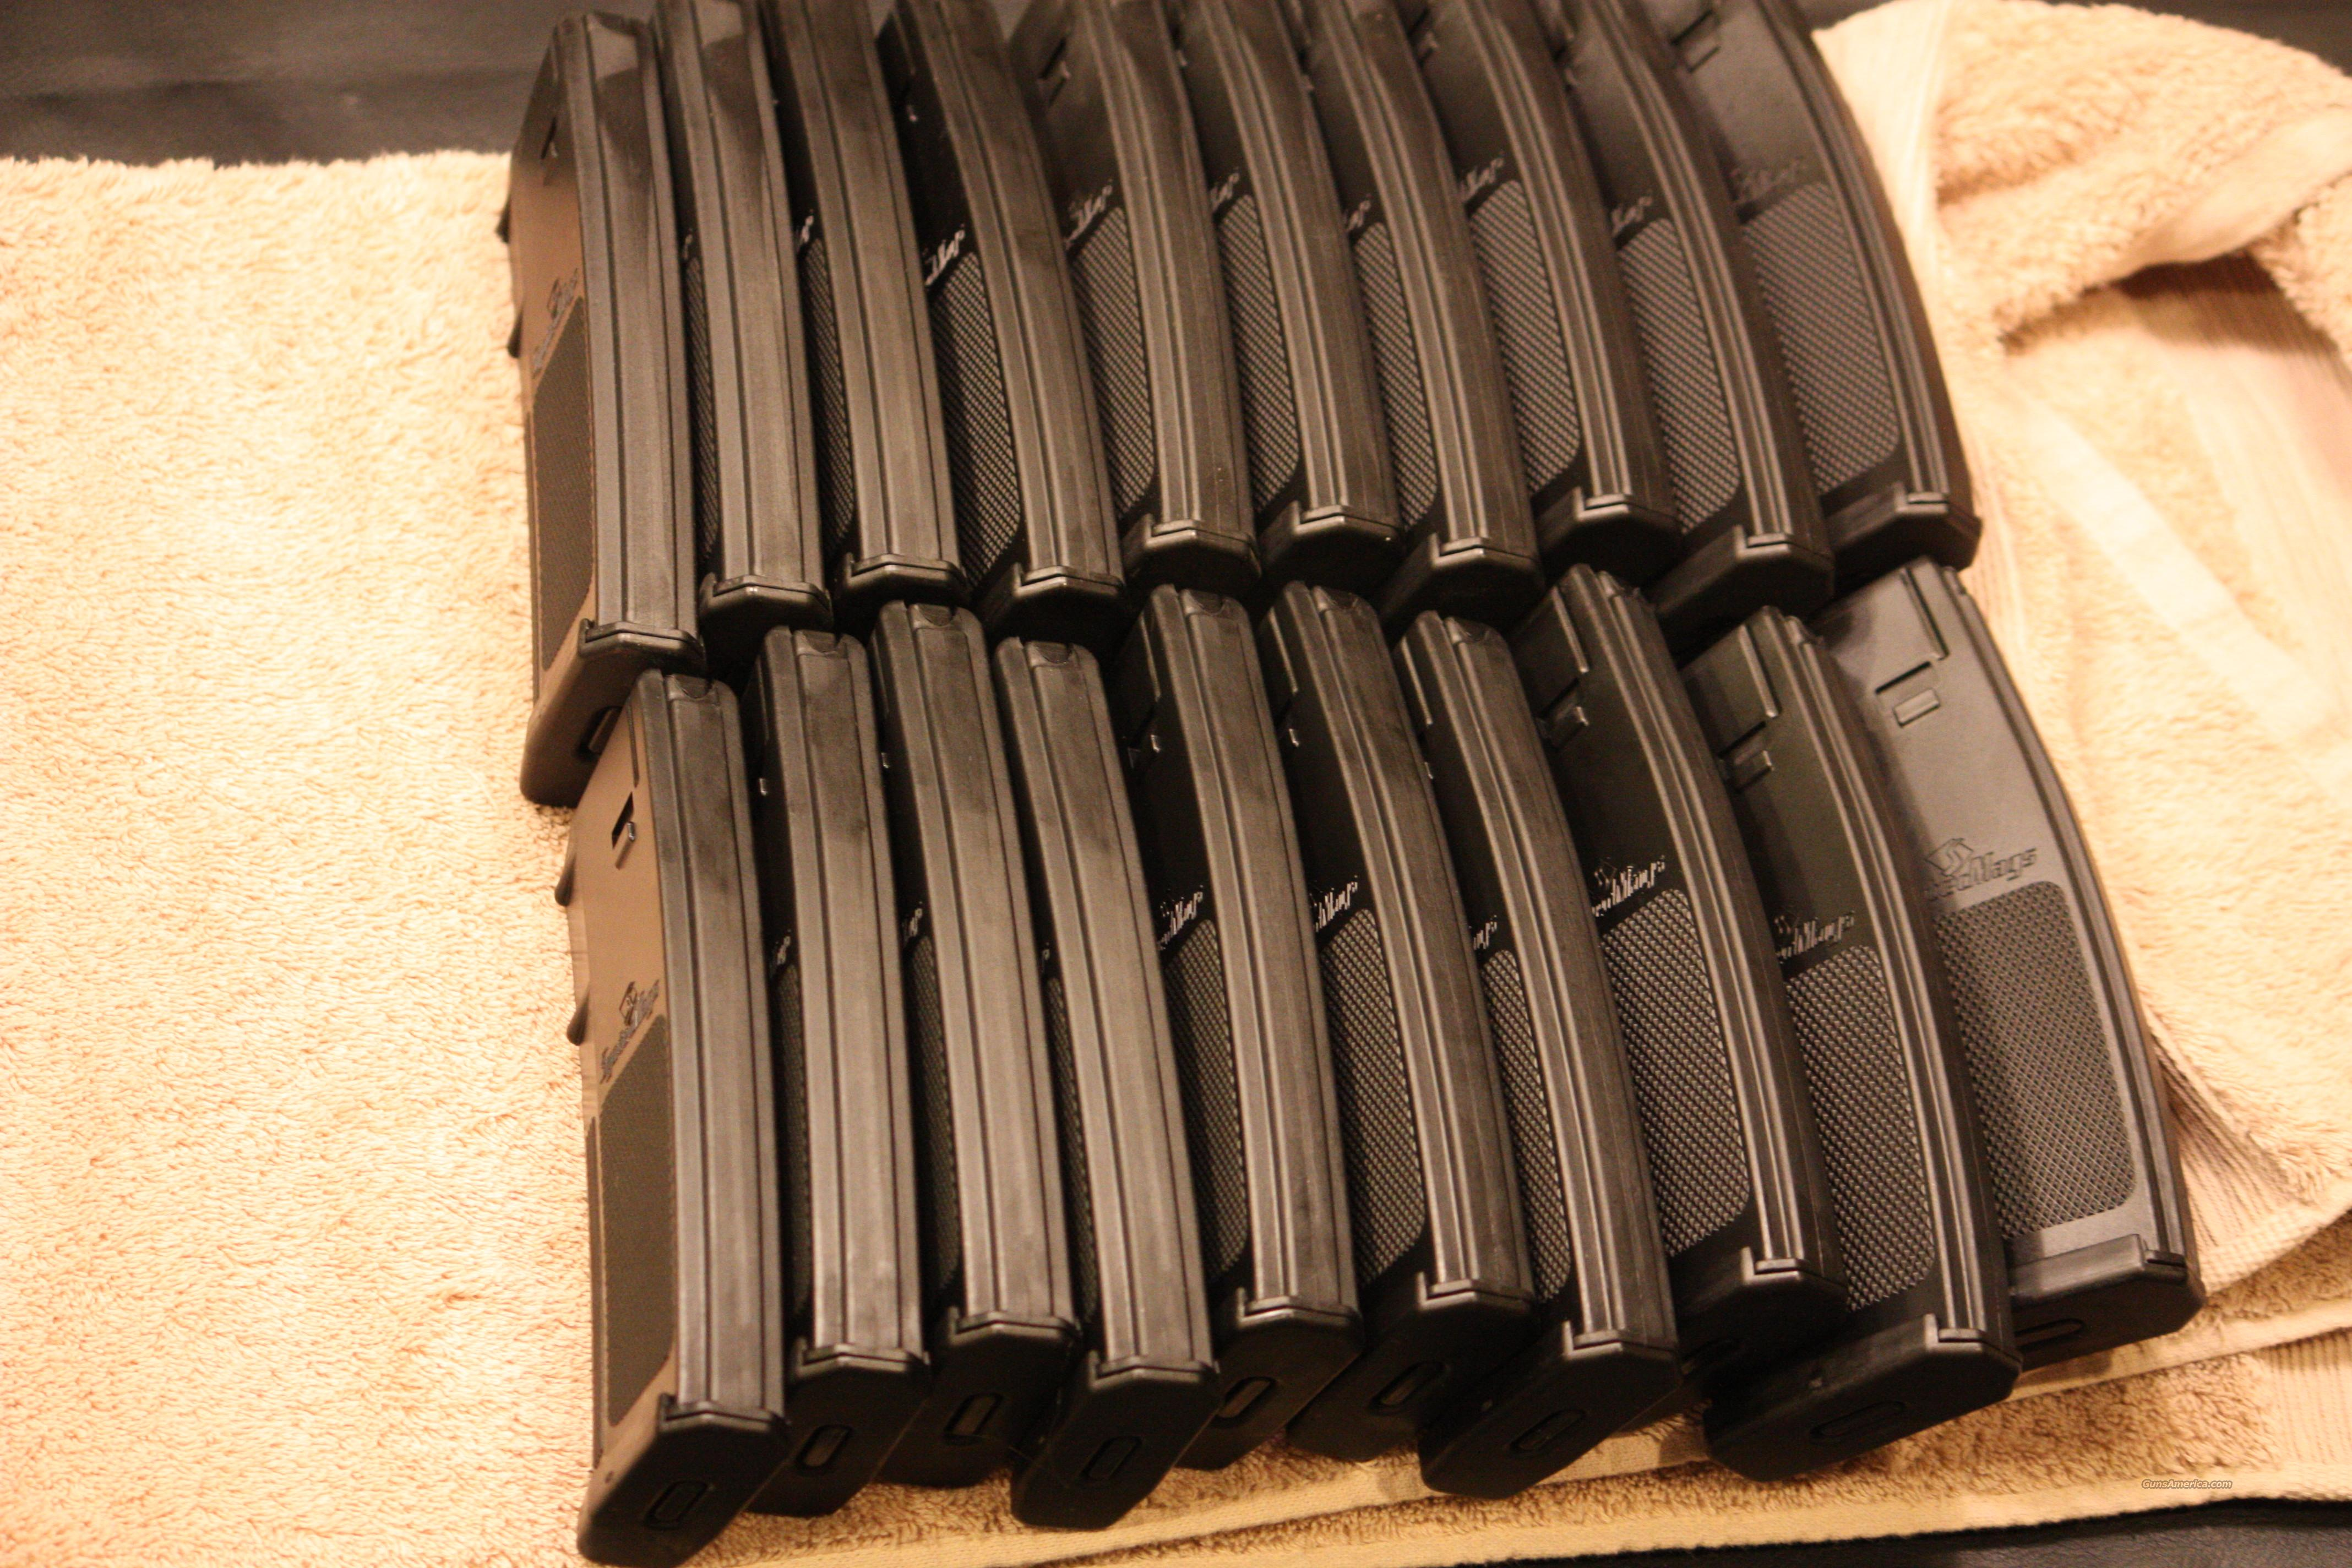 20 New .223 AR-15 30rd Magazine clips, Not  Magpul Mags  Non-Guns > Magazines & Clips > Rifle Magazines > AR-15 Type